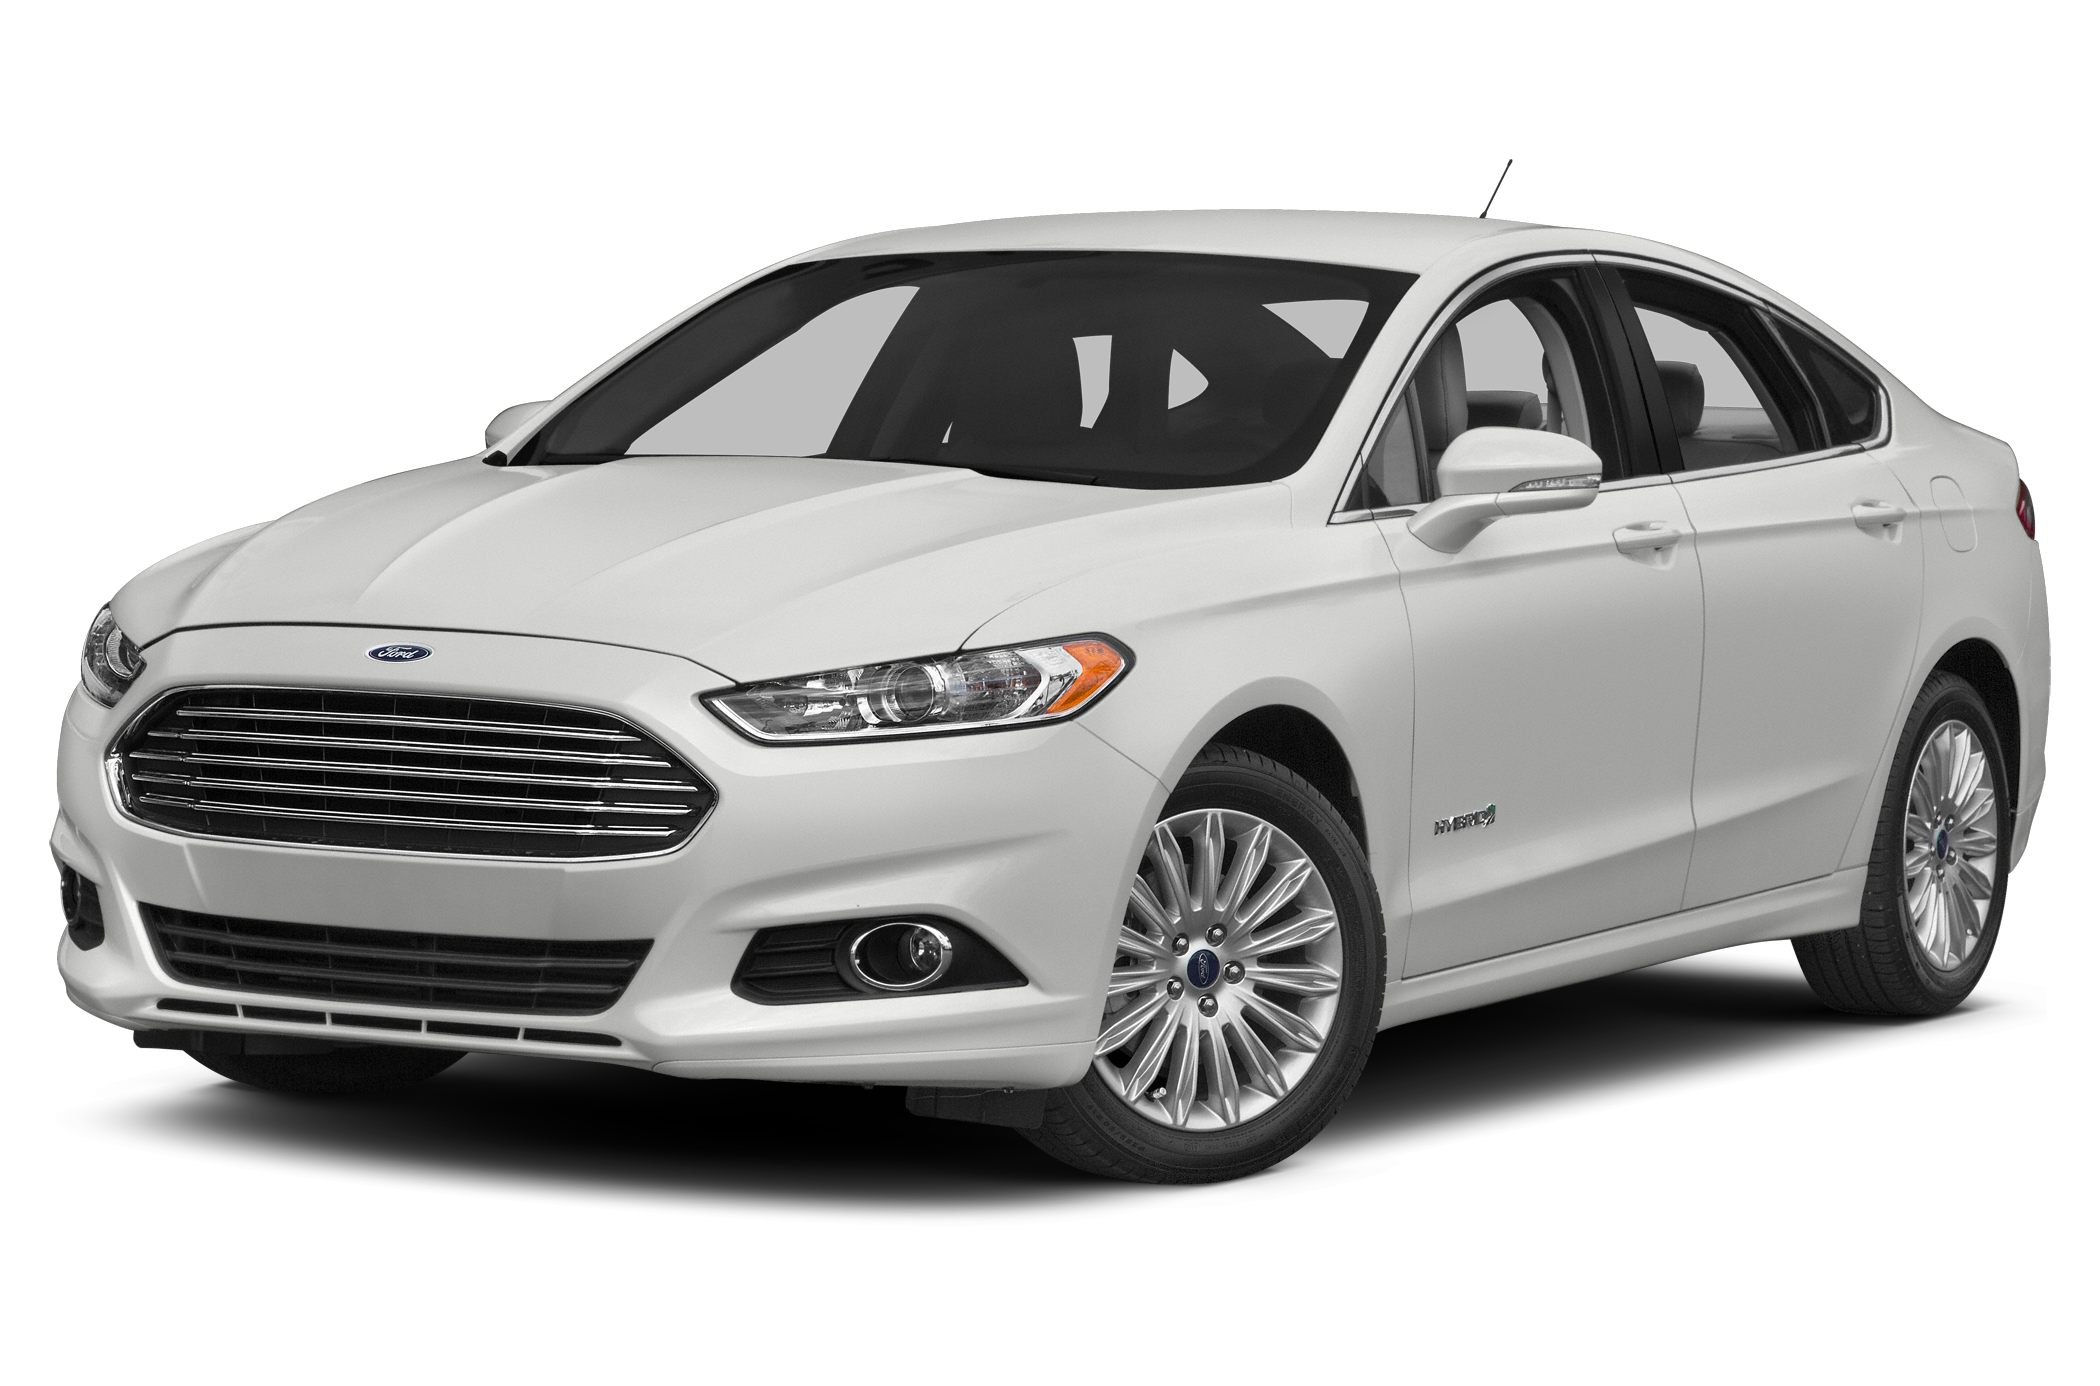 2015 Ford Fusion Hybrid SE Sedan for sale in Lithia Springs for $28,310 with 1 miles